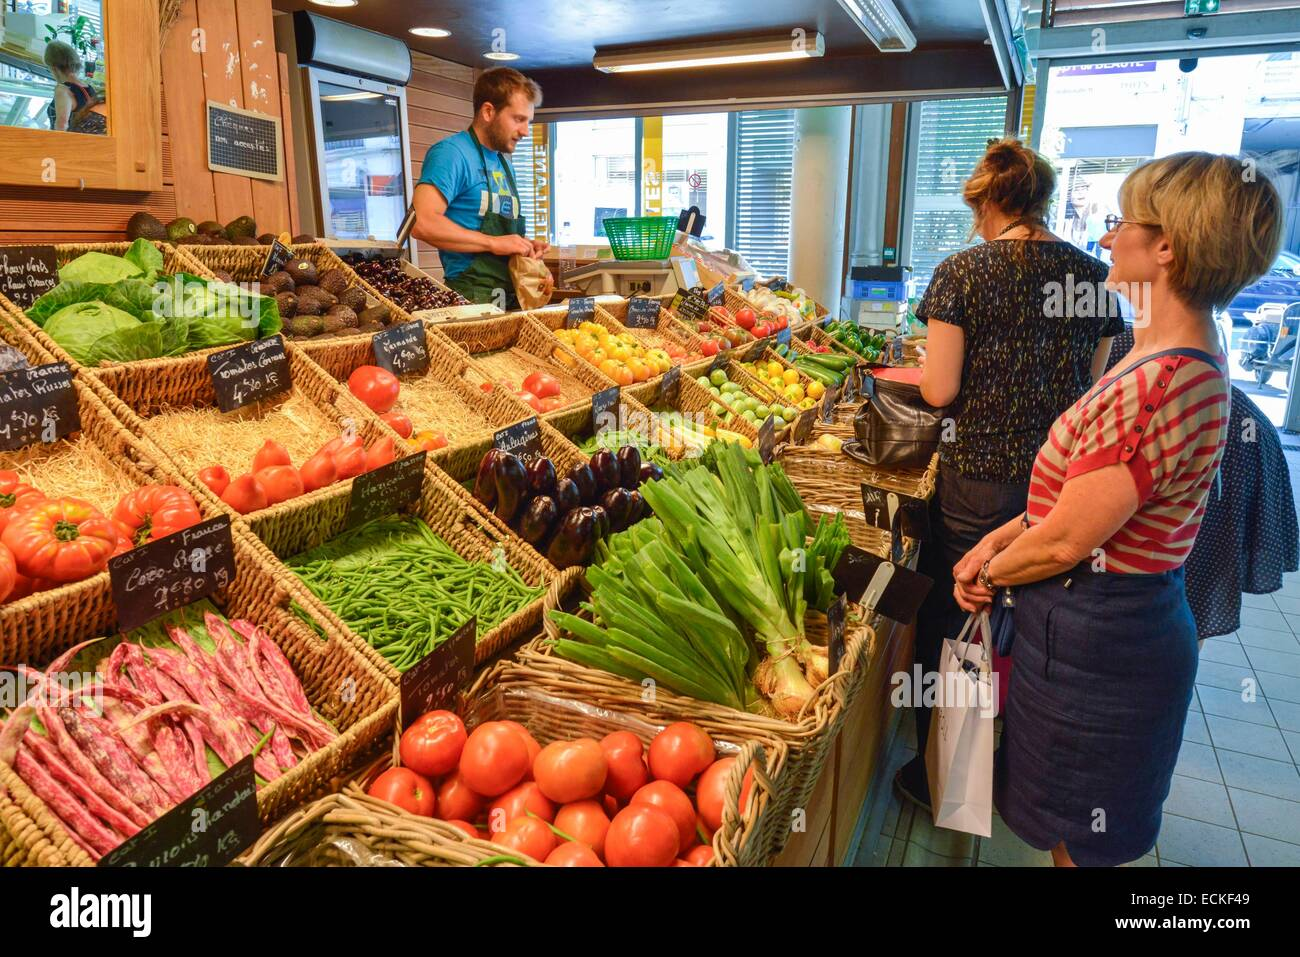 France, Herault, Montpellier, Halle Halls Castellanes, womens making their shopping in front of a stall of fruits - Stock Image